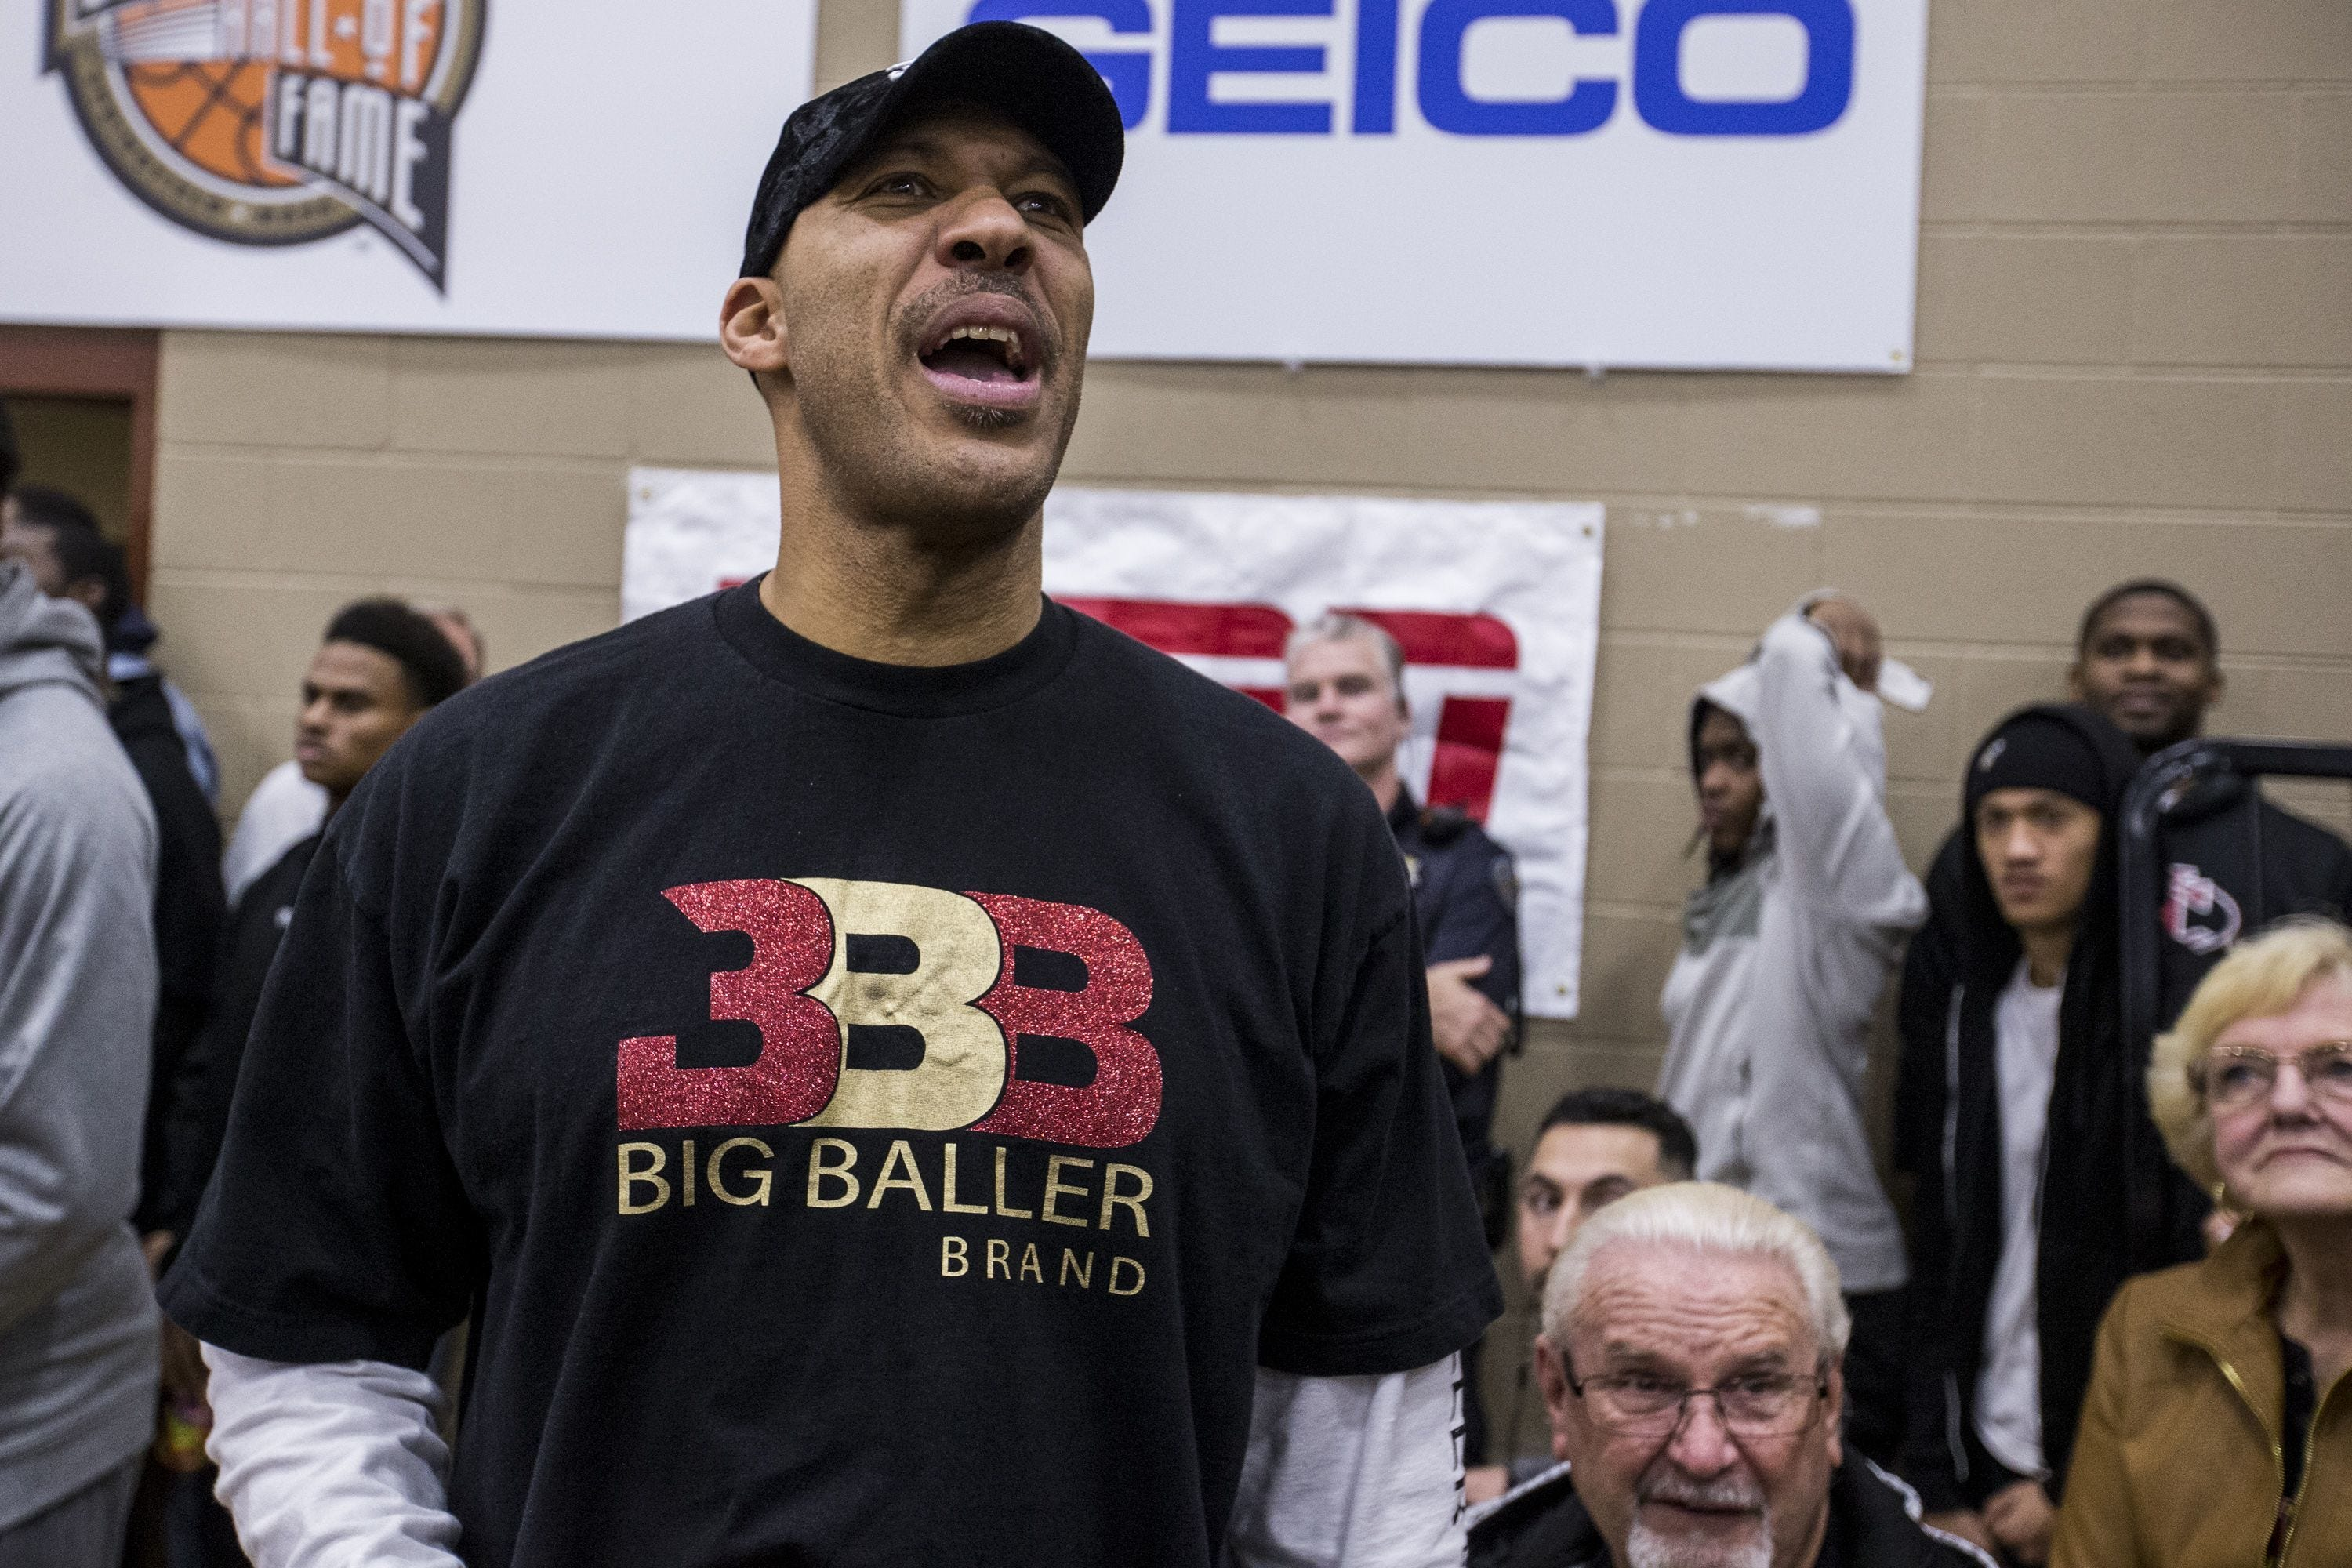 LaVar Ball once said he'd beat Michael Jordan one-on-one. Can challenge now become a reality?